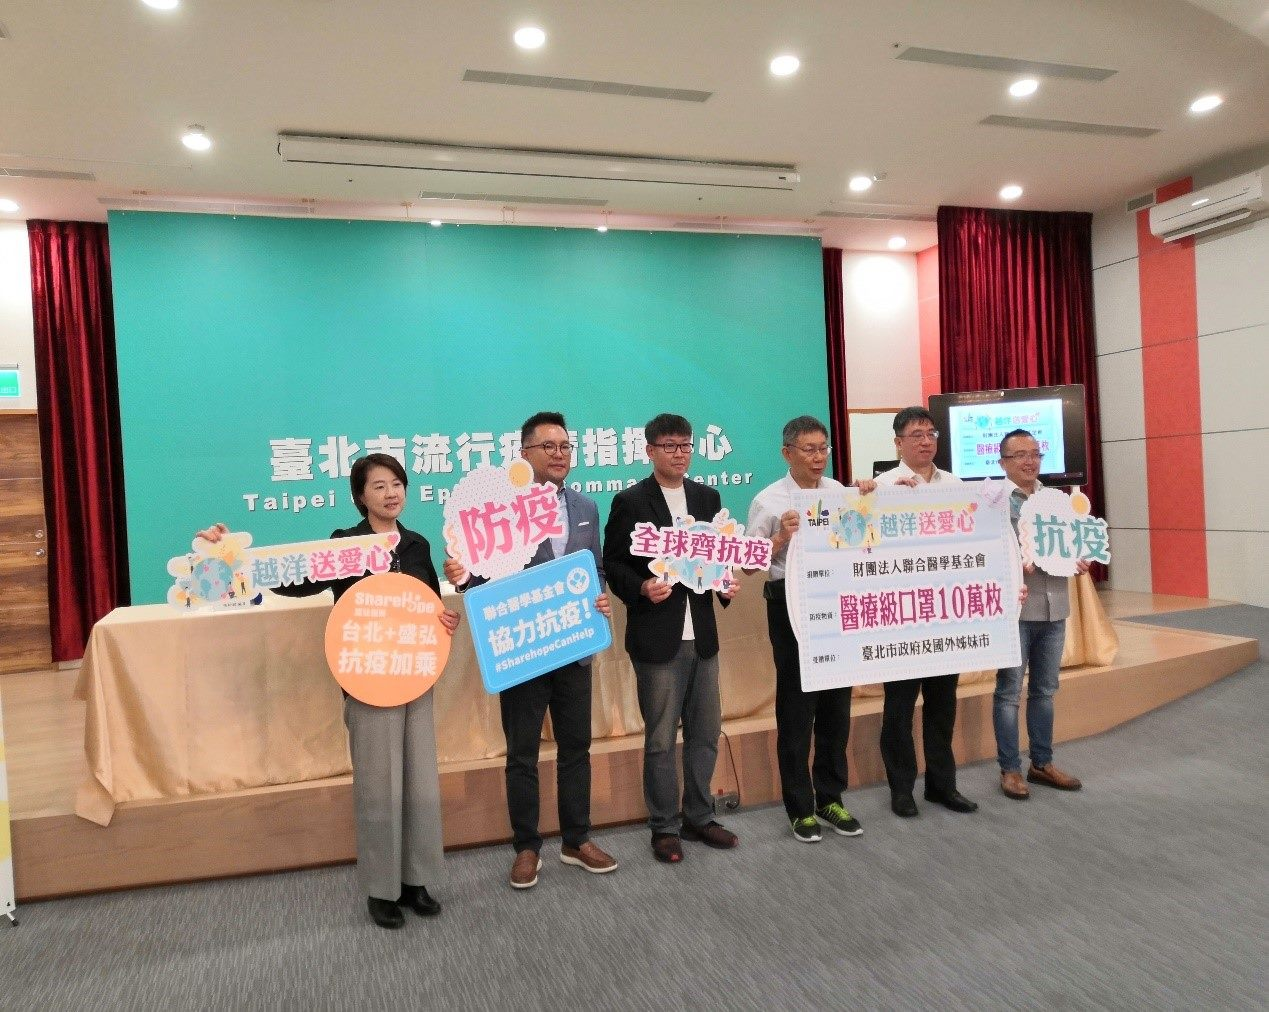 On behalf of the Taipei City Government, Mayor Ko received donation of 10 thousand surgical masks by the United Medical Foundation Taiwan